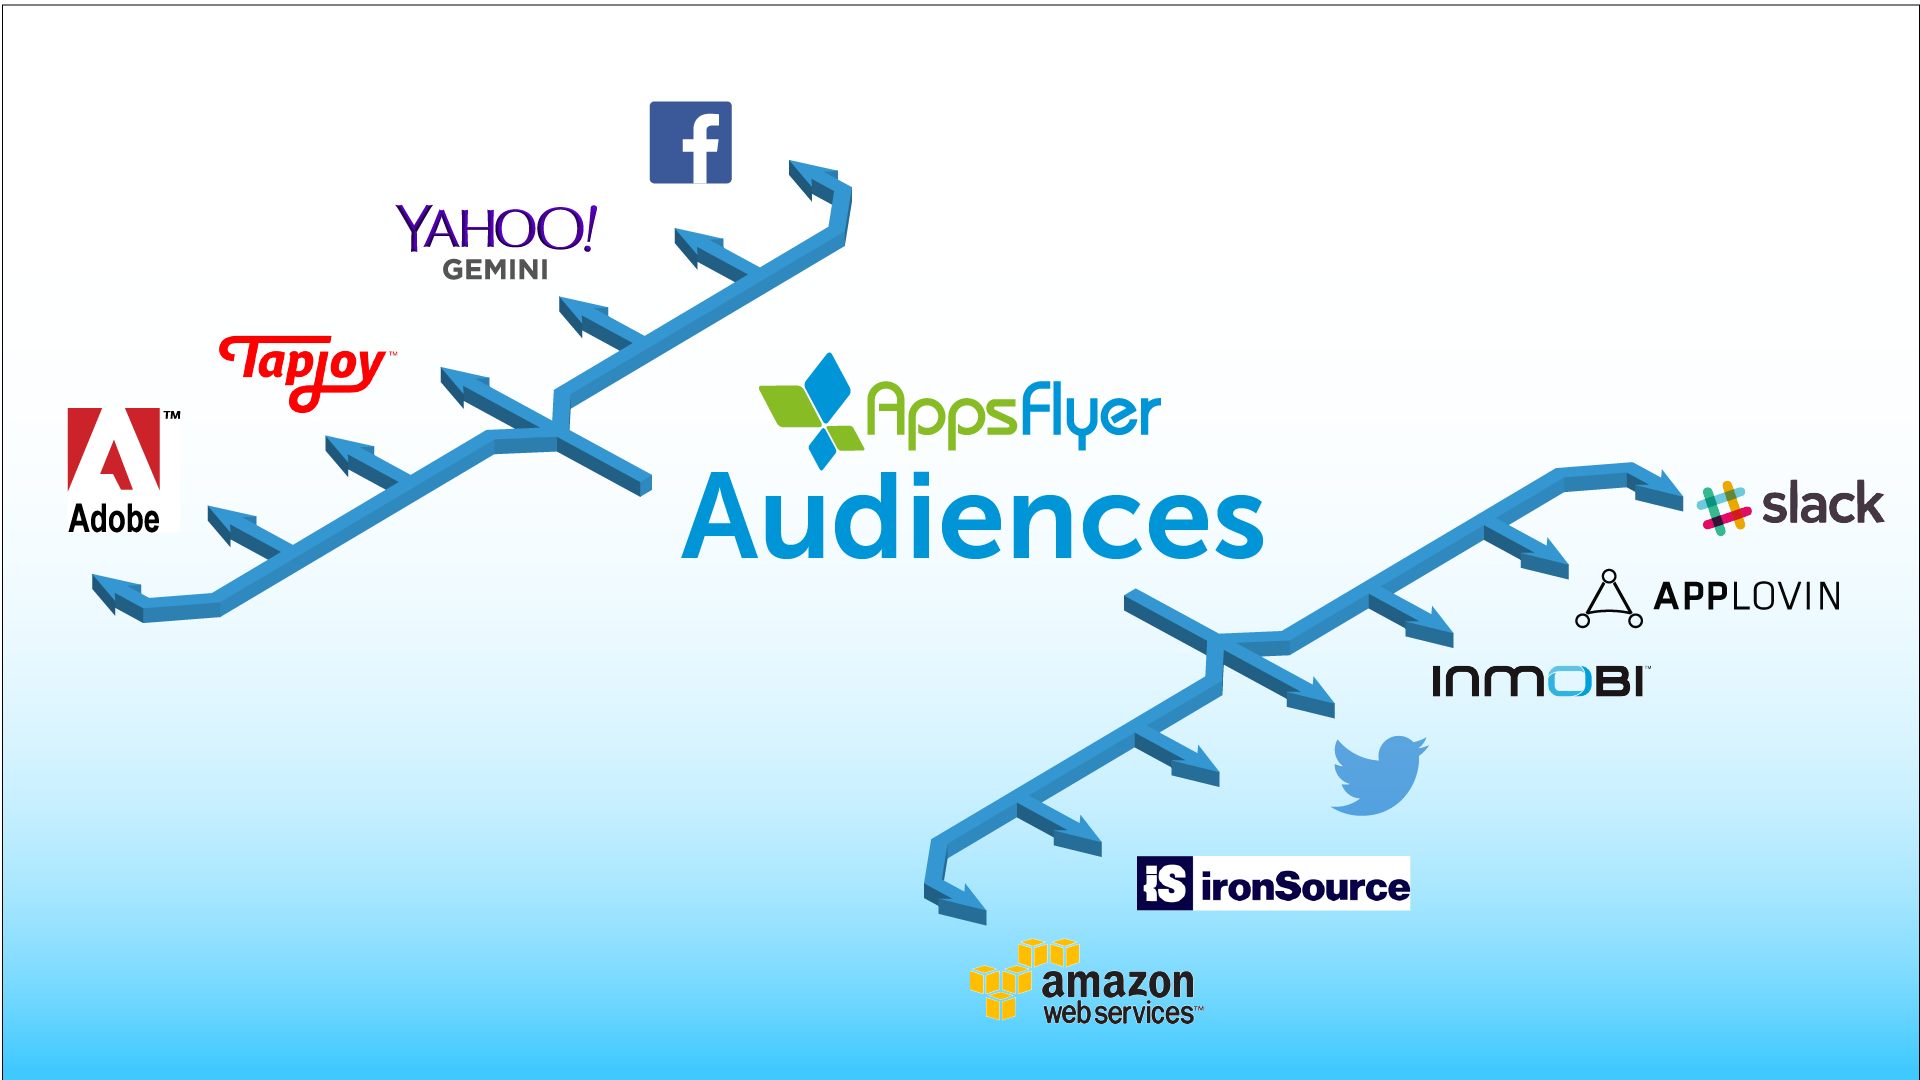 AppsFlyer's Leading Audiences Solution